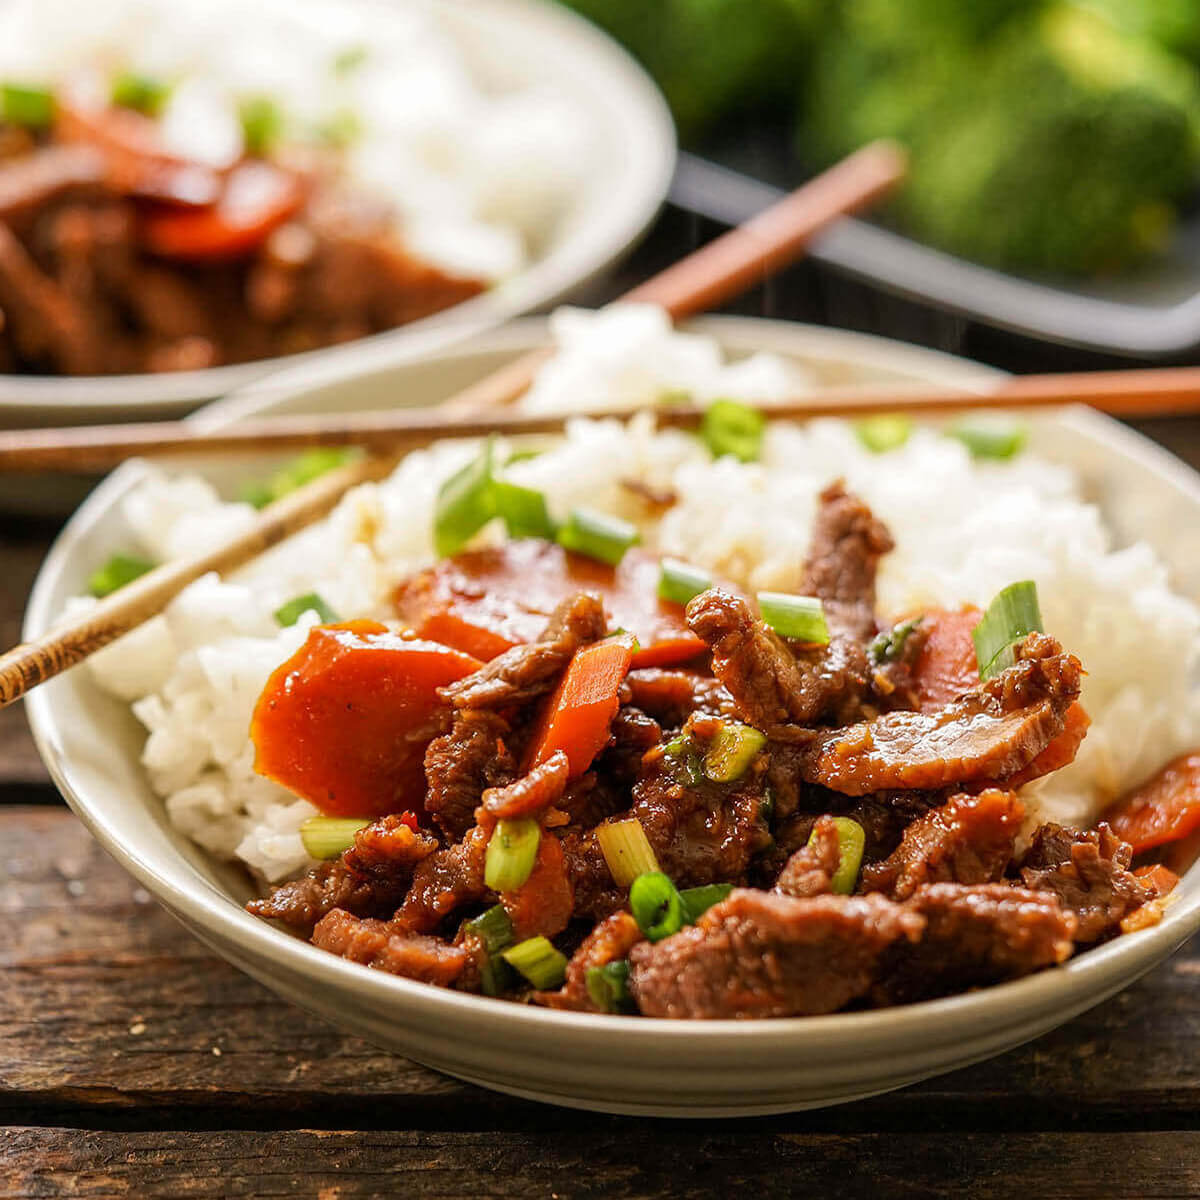 Mongolian Beef served over rice with chopsticks.